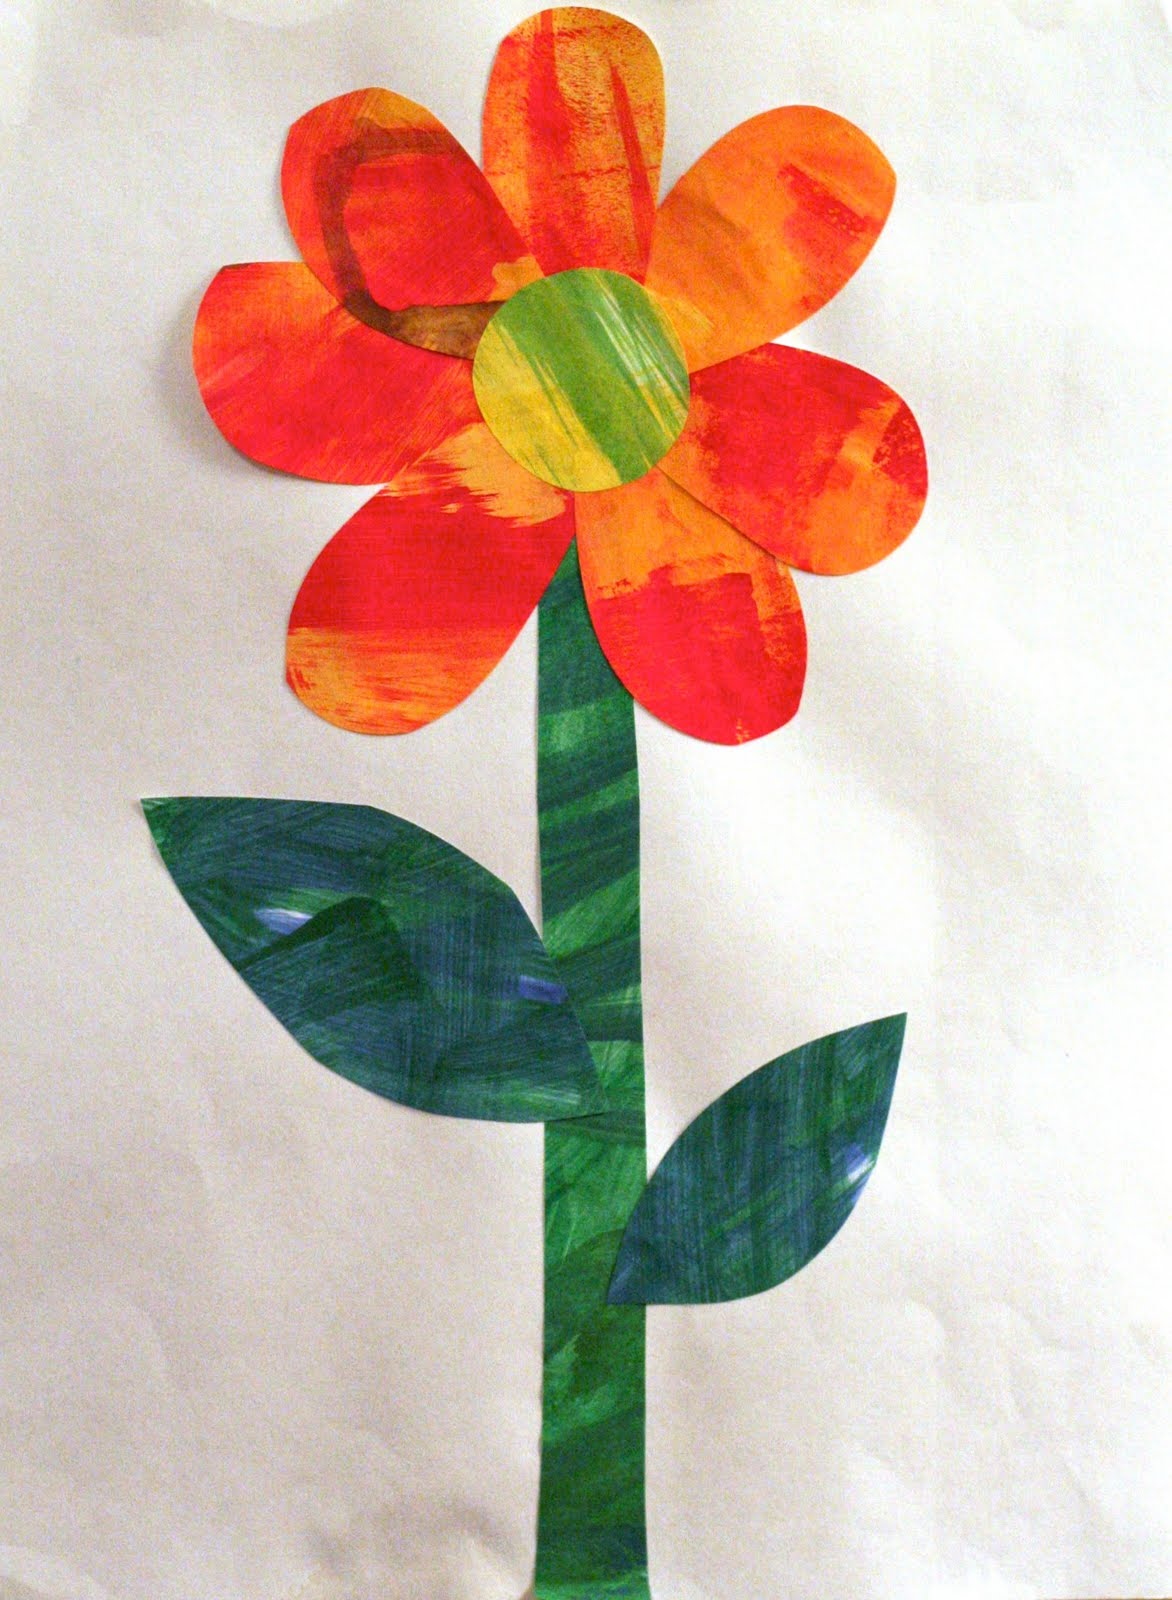 Planted By Streams The Tiny Seed Eric Carle Inspired Art